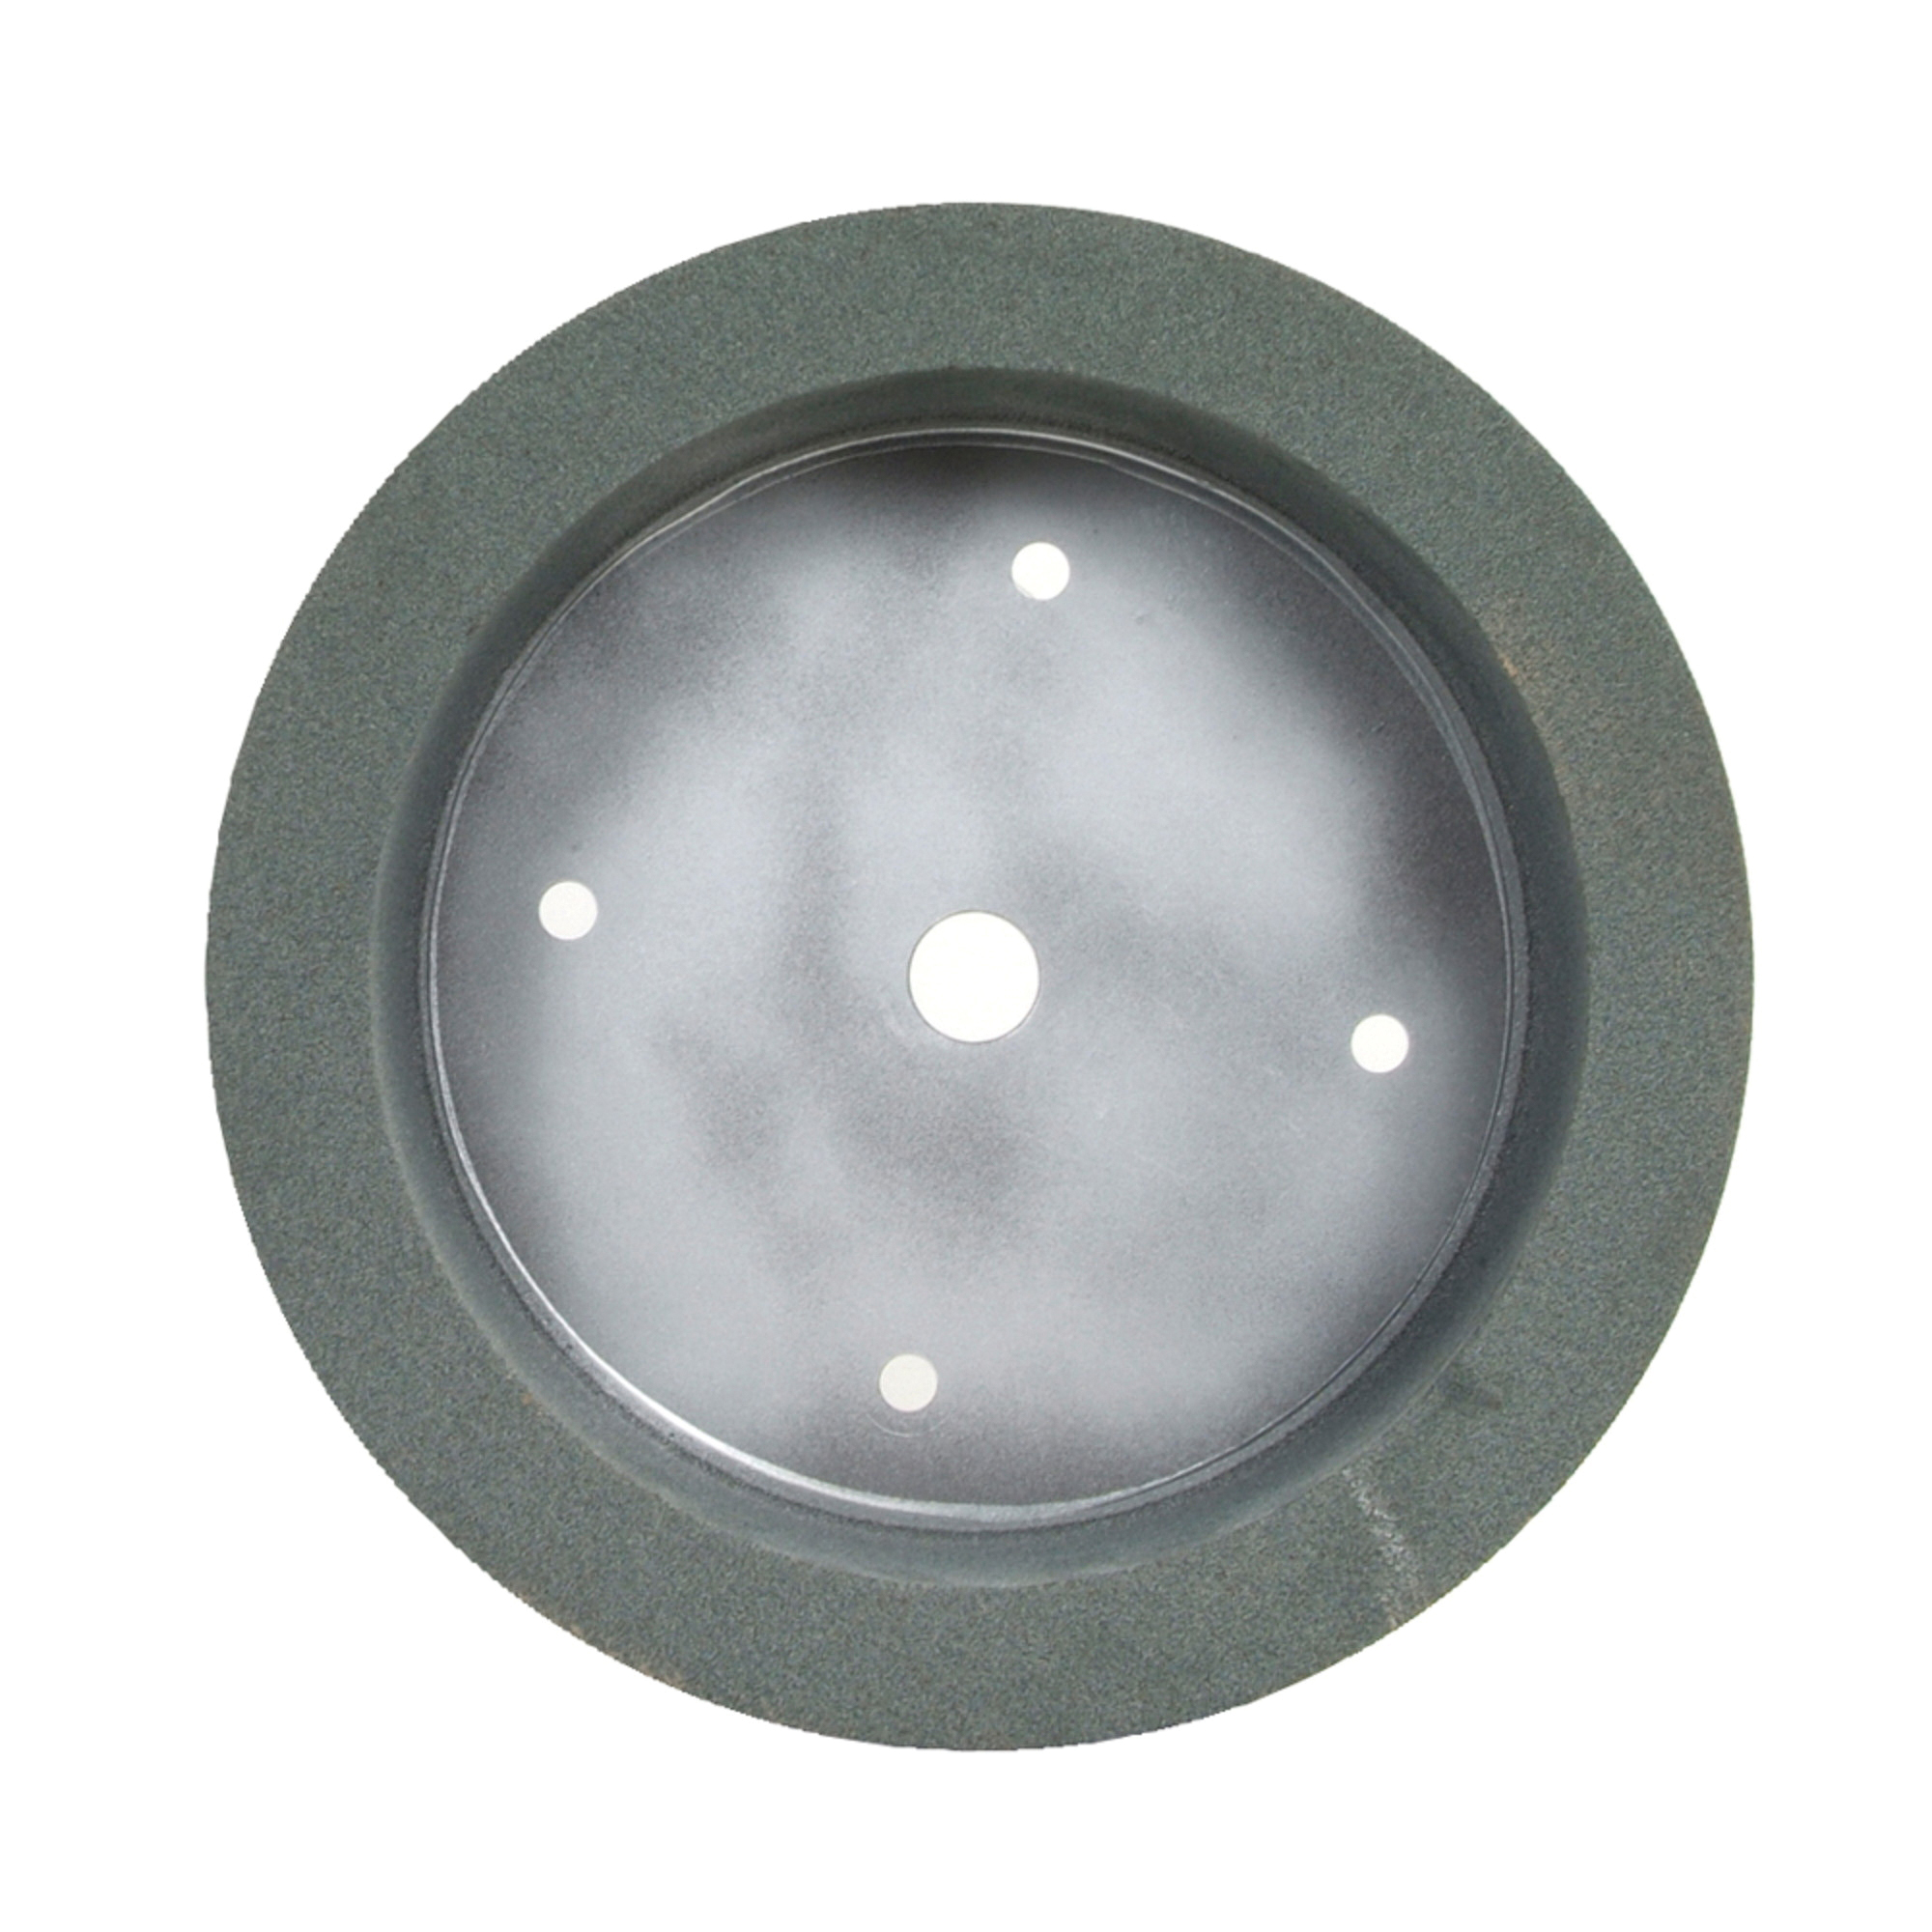 Norton® 66253364657 39C Cylinder Toolroom Wheel, 14 in Dia x 4 in THK, 11 in Center Hole, 60 Grit, Silicon Carbide Abrasive